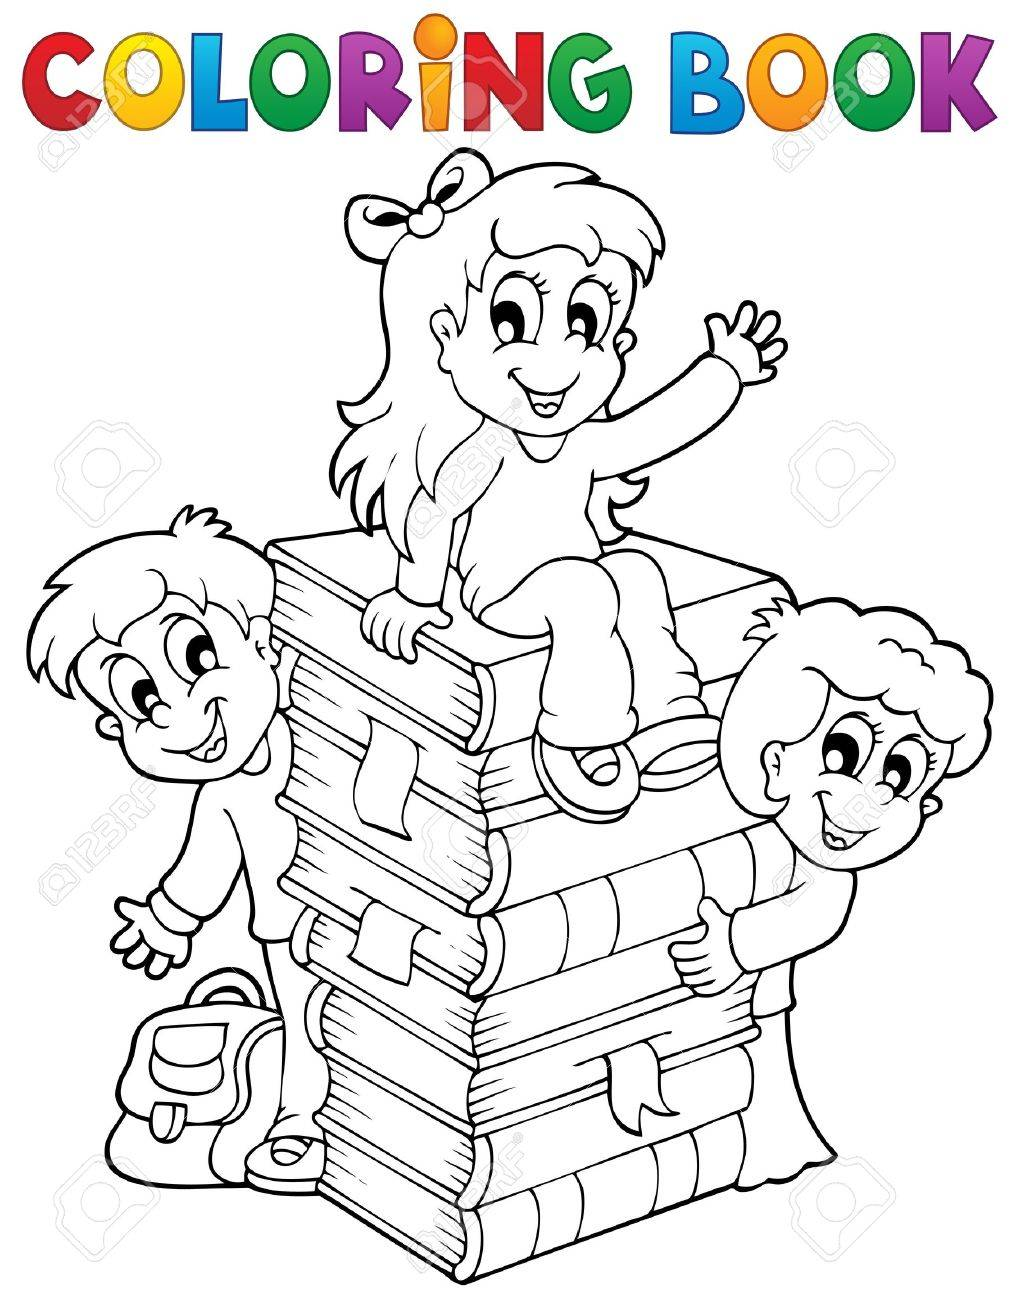 Kids coloring book - Coloring Book Kids Theme 4 Eps10 Vector Illustration Stock Vector 21571121